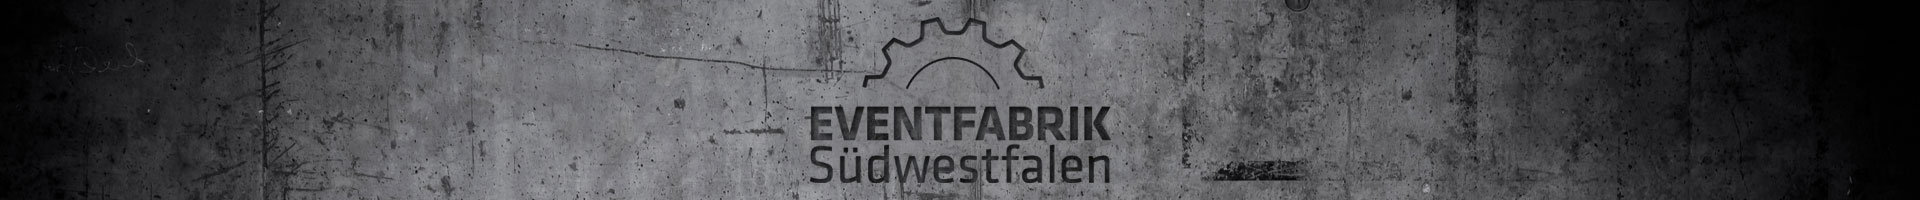 Eventfabrik Südwestfalen